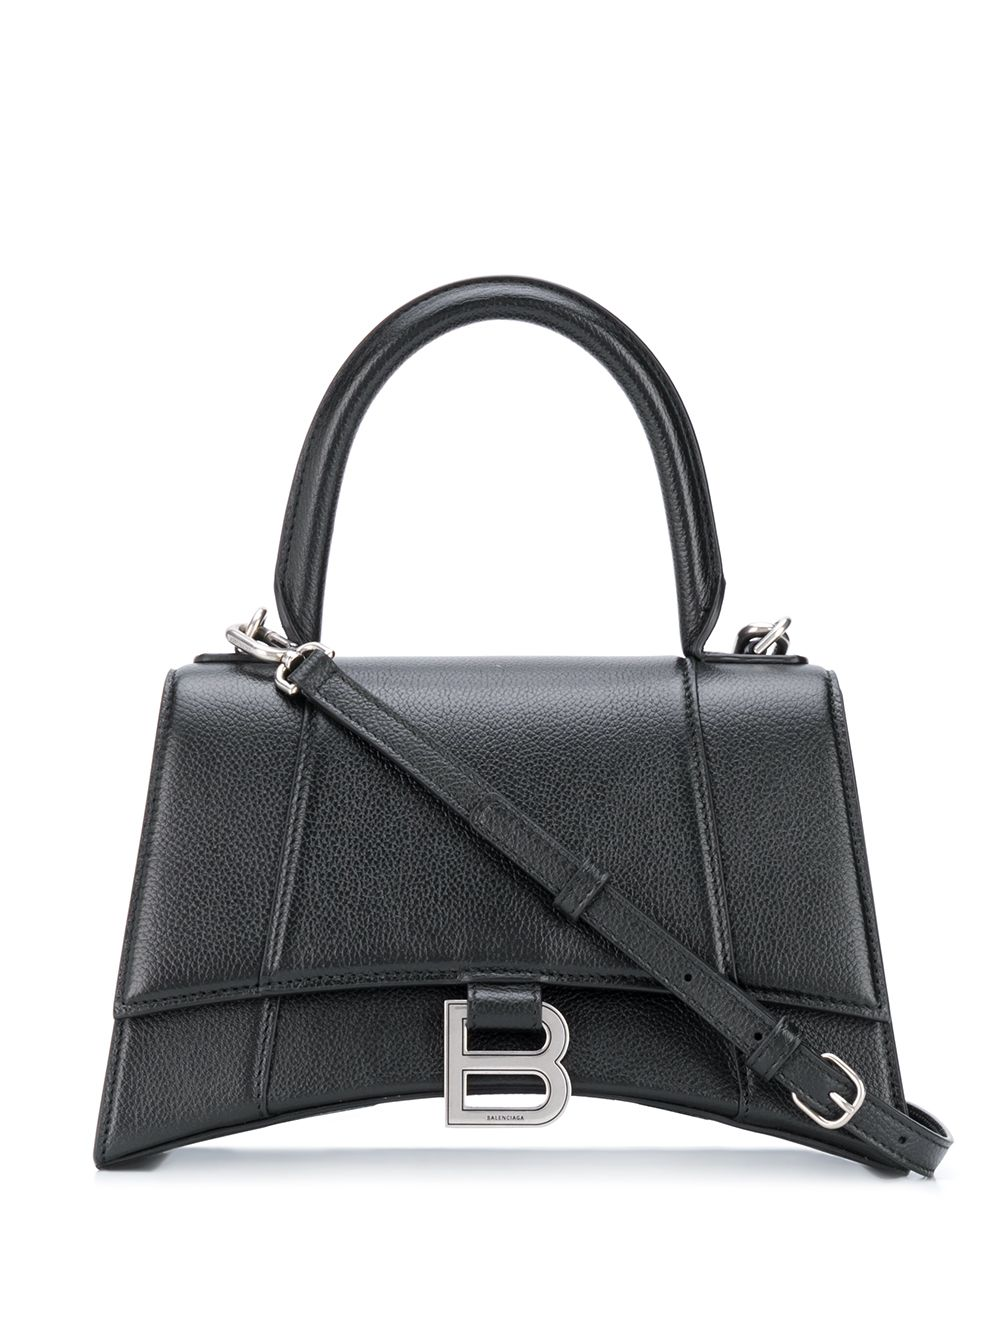 Picture of Balenciaga | Hourglass S Tote Bag